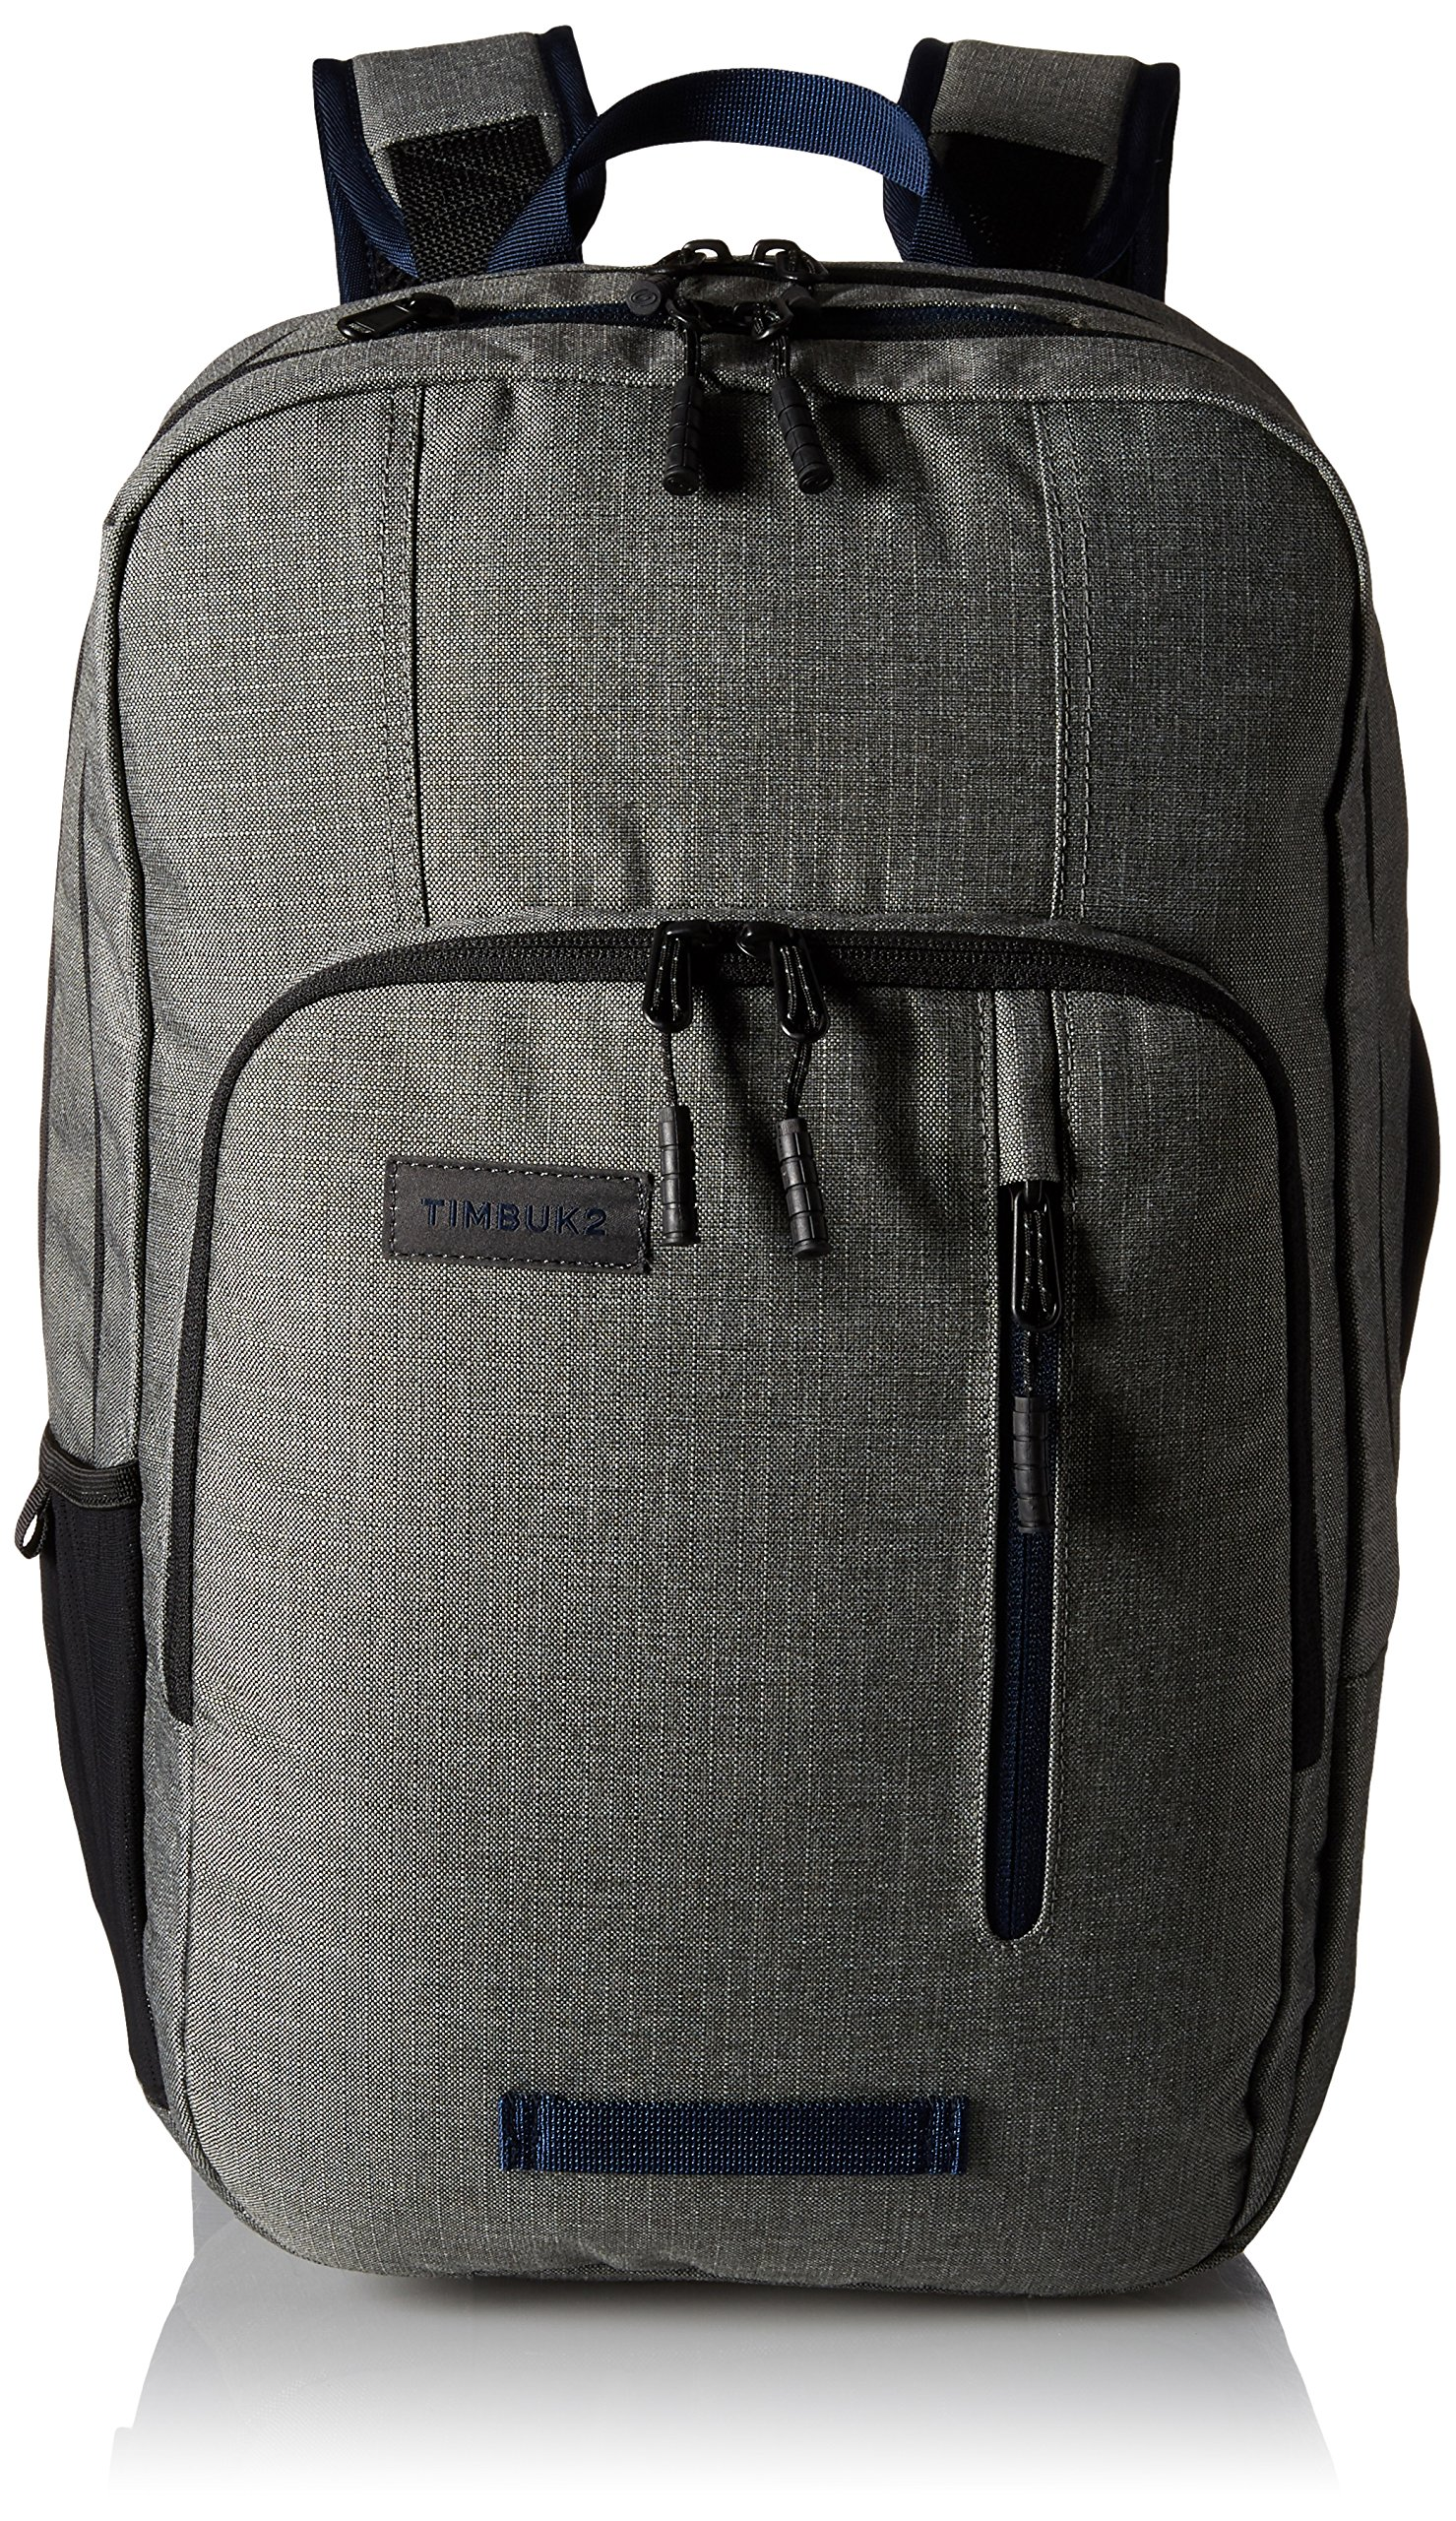 Timbuk2 Uptown Travel-Friendly Laptop Backpack, Midway , One Size by Timbuk2